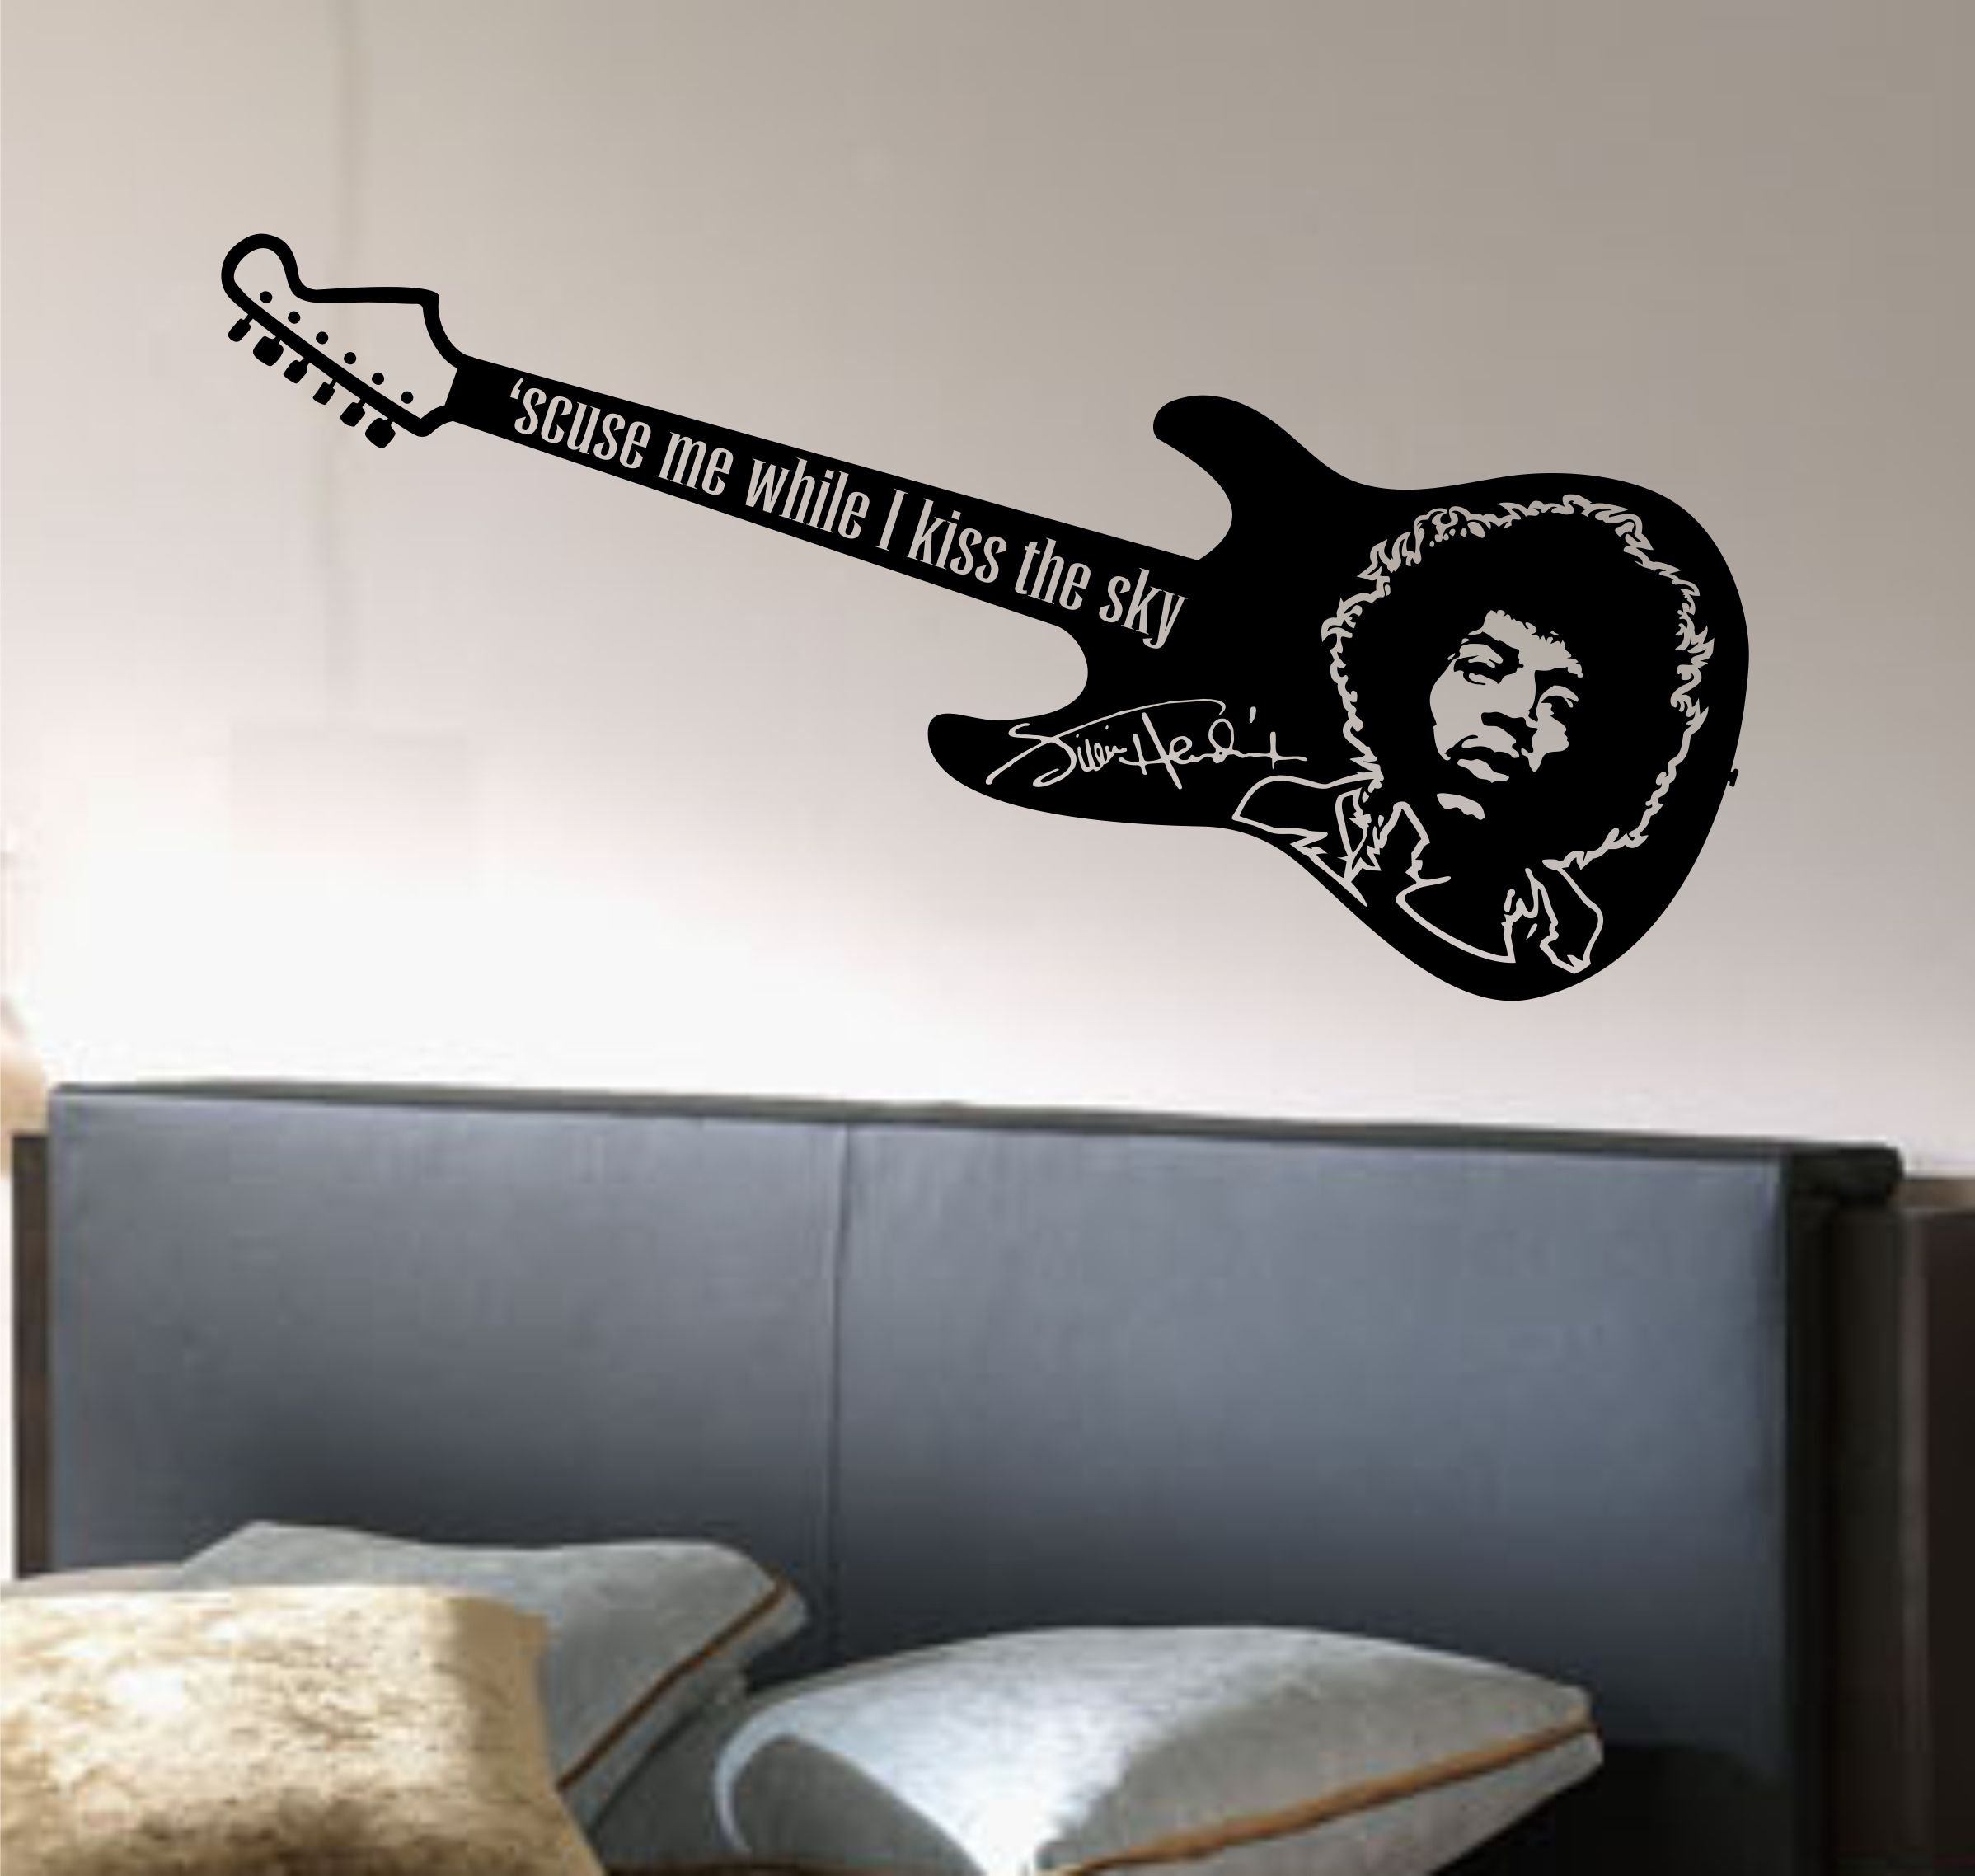 Jimi hendrix wall decal guitar vinyl sticker wall art mural jimi hendrix wall decal guitar vinyl sticker wall art mural 5ft long from amipublicfo Image collections